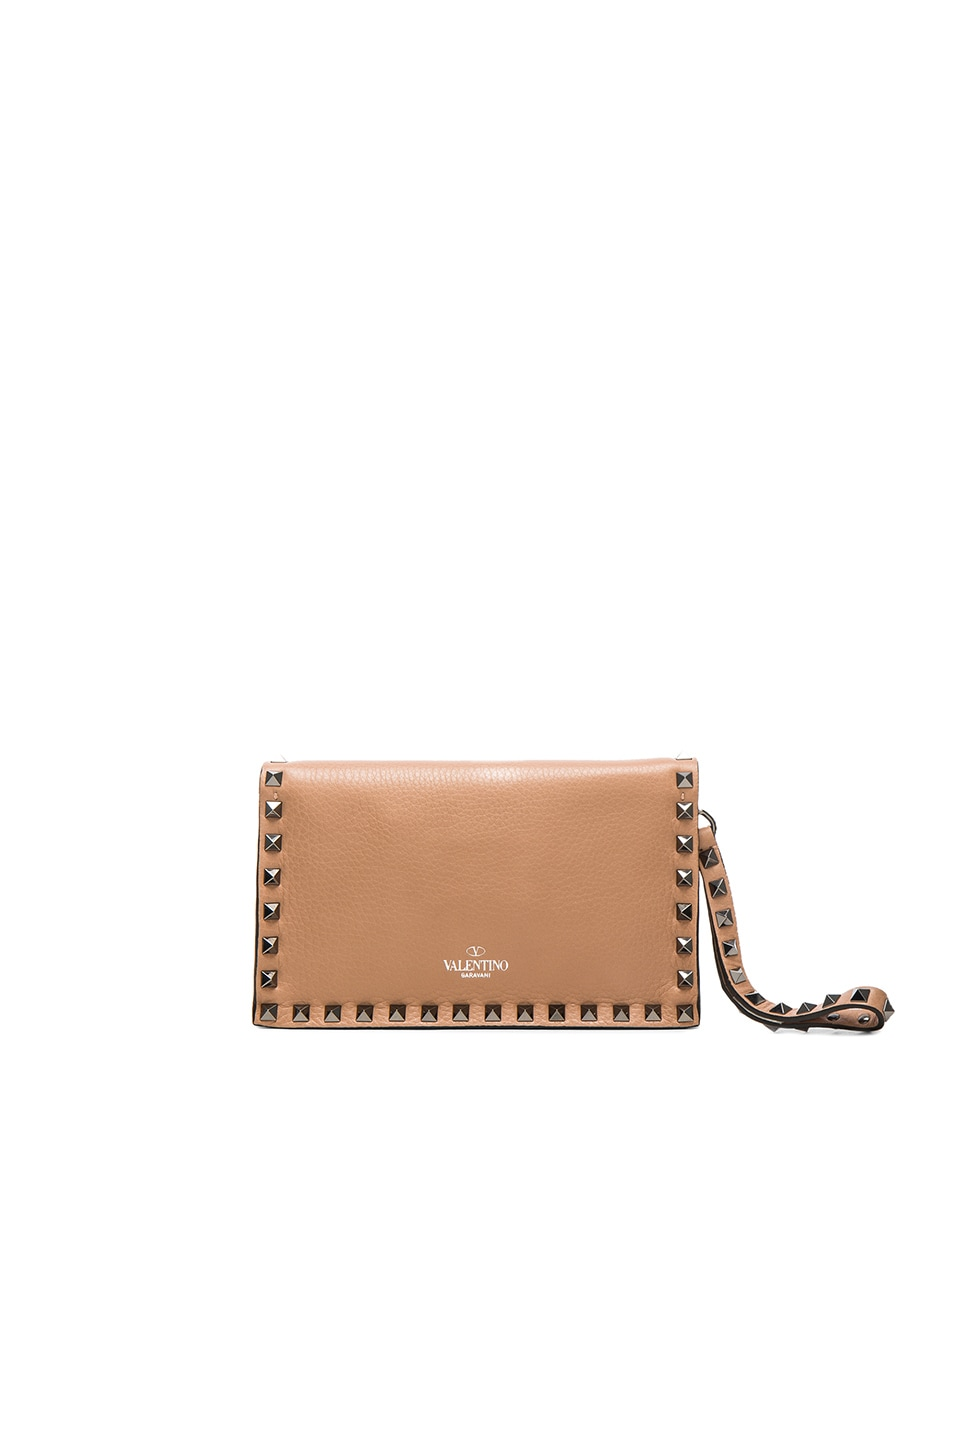 Image 2 of Valentino Rockstud Small Clutch in Soft Noisette